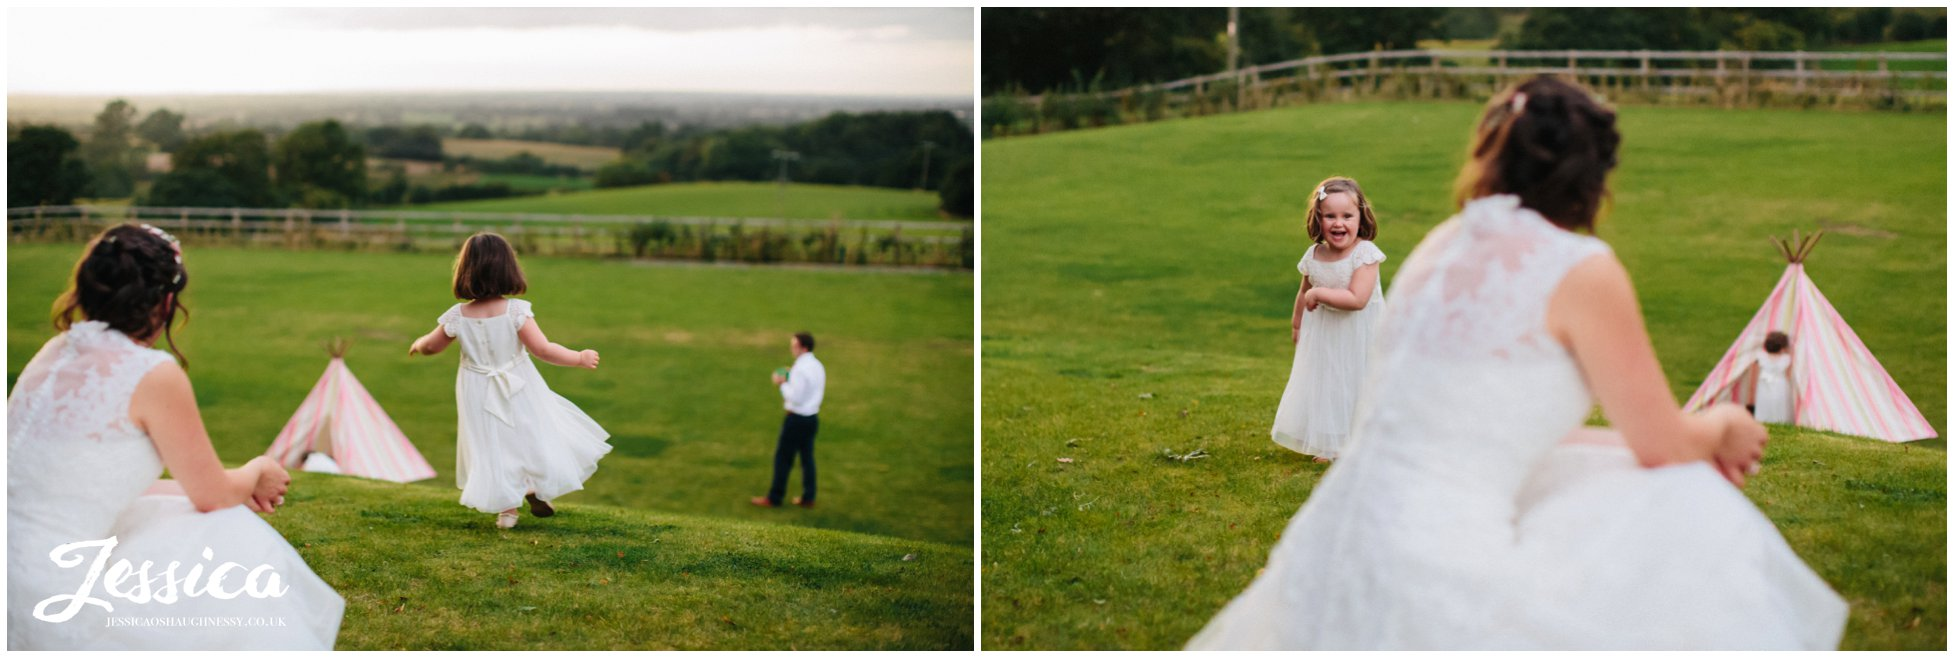 flower girls play on the field at a wedding at harthill weddings, the success factory